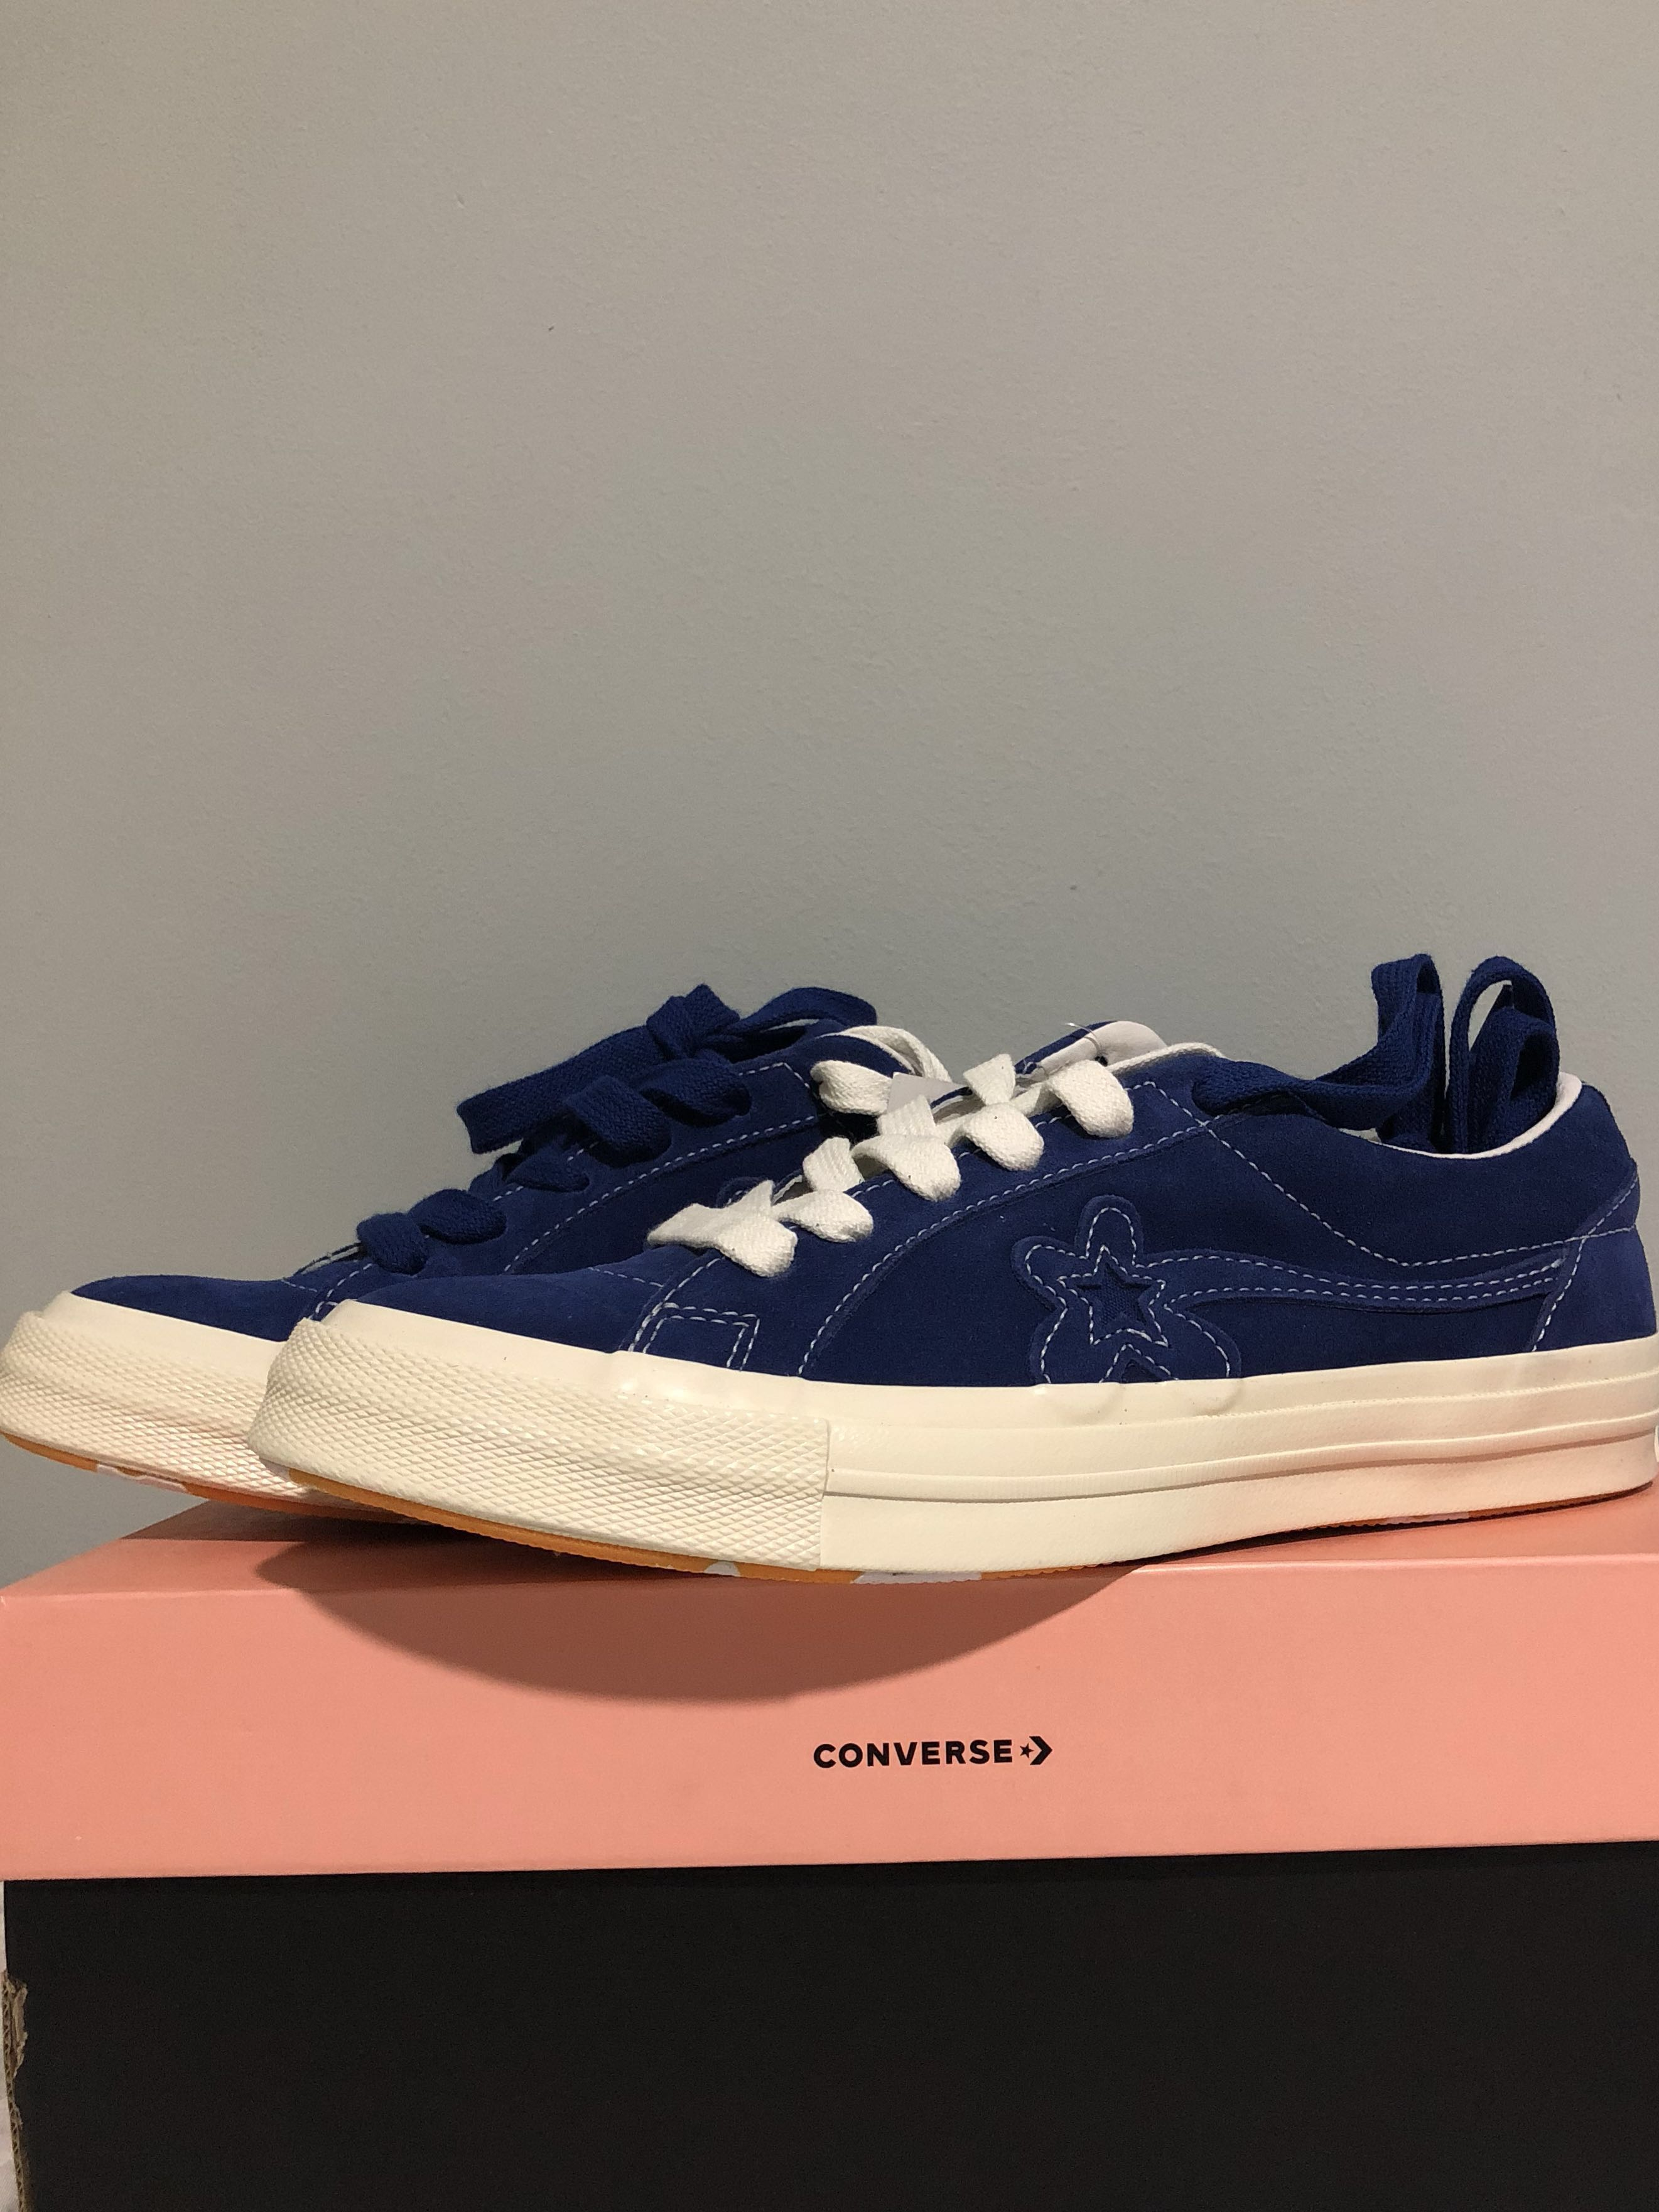 magasin converse limoges